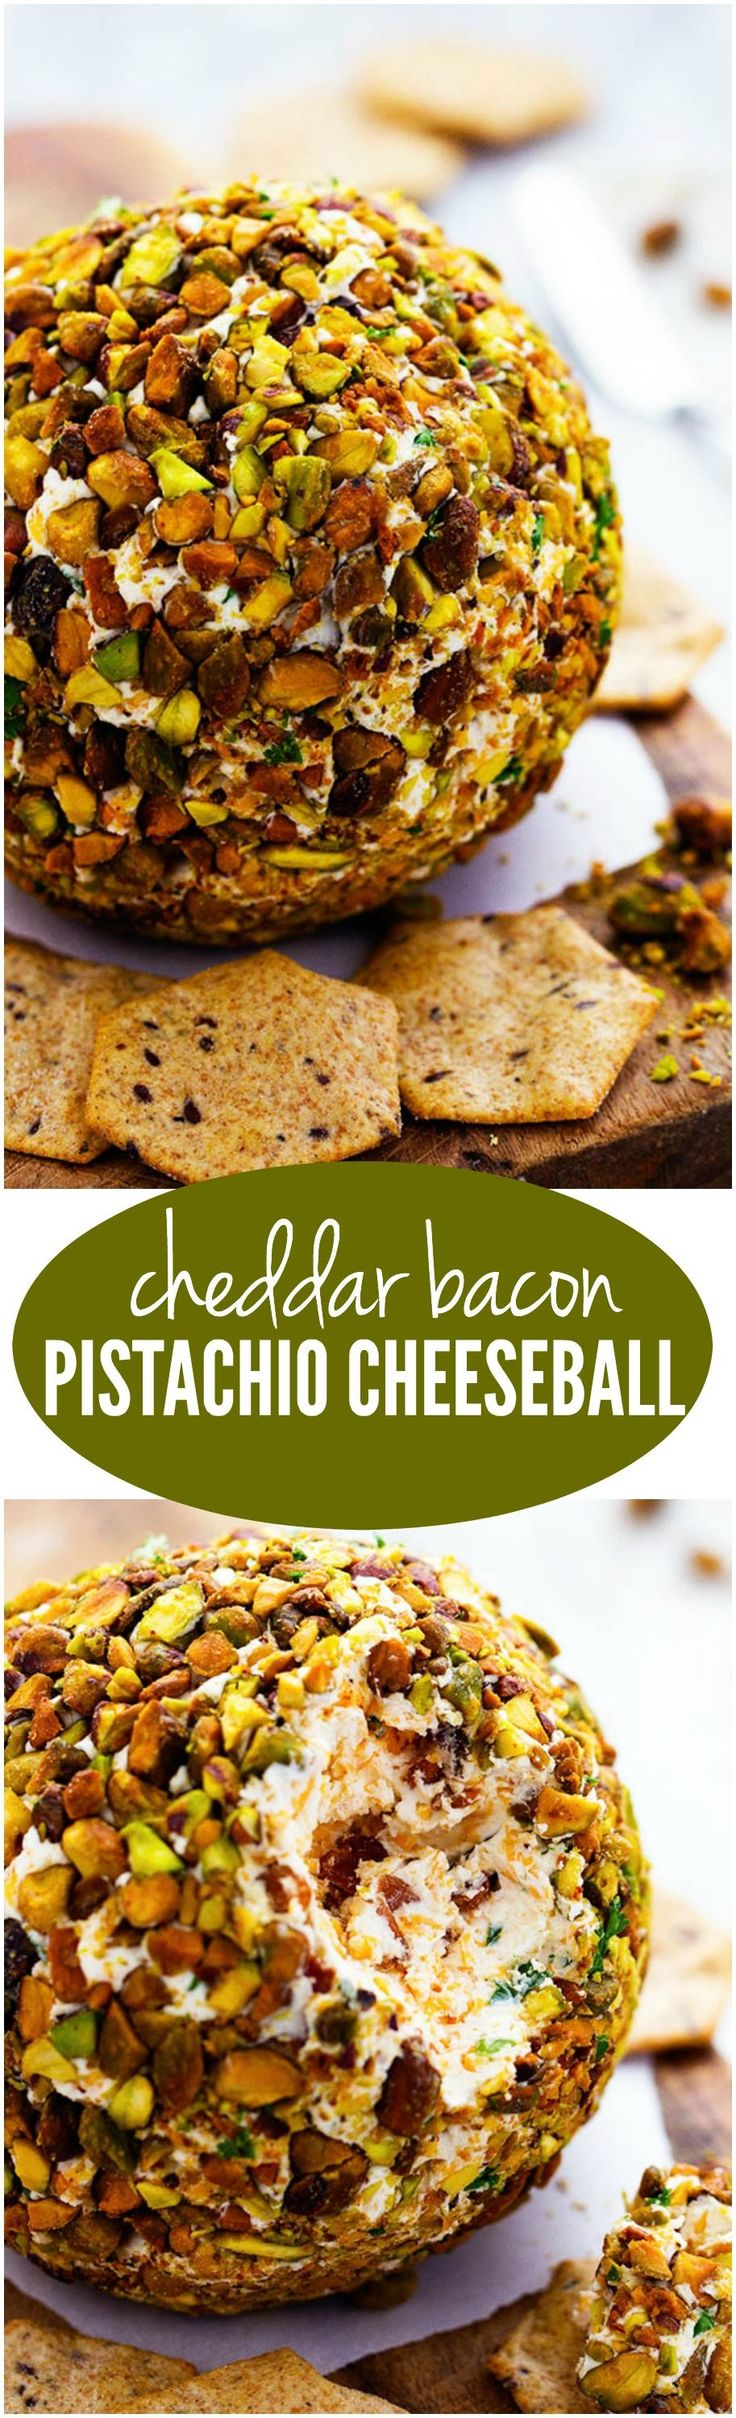 Cheddar Bacon Pistachio Cheeseball is packed with amazing flavor and will be a huge hit! therecipecritic.com